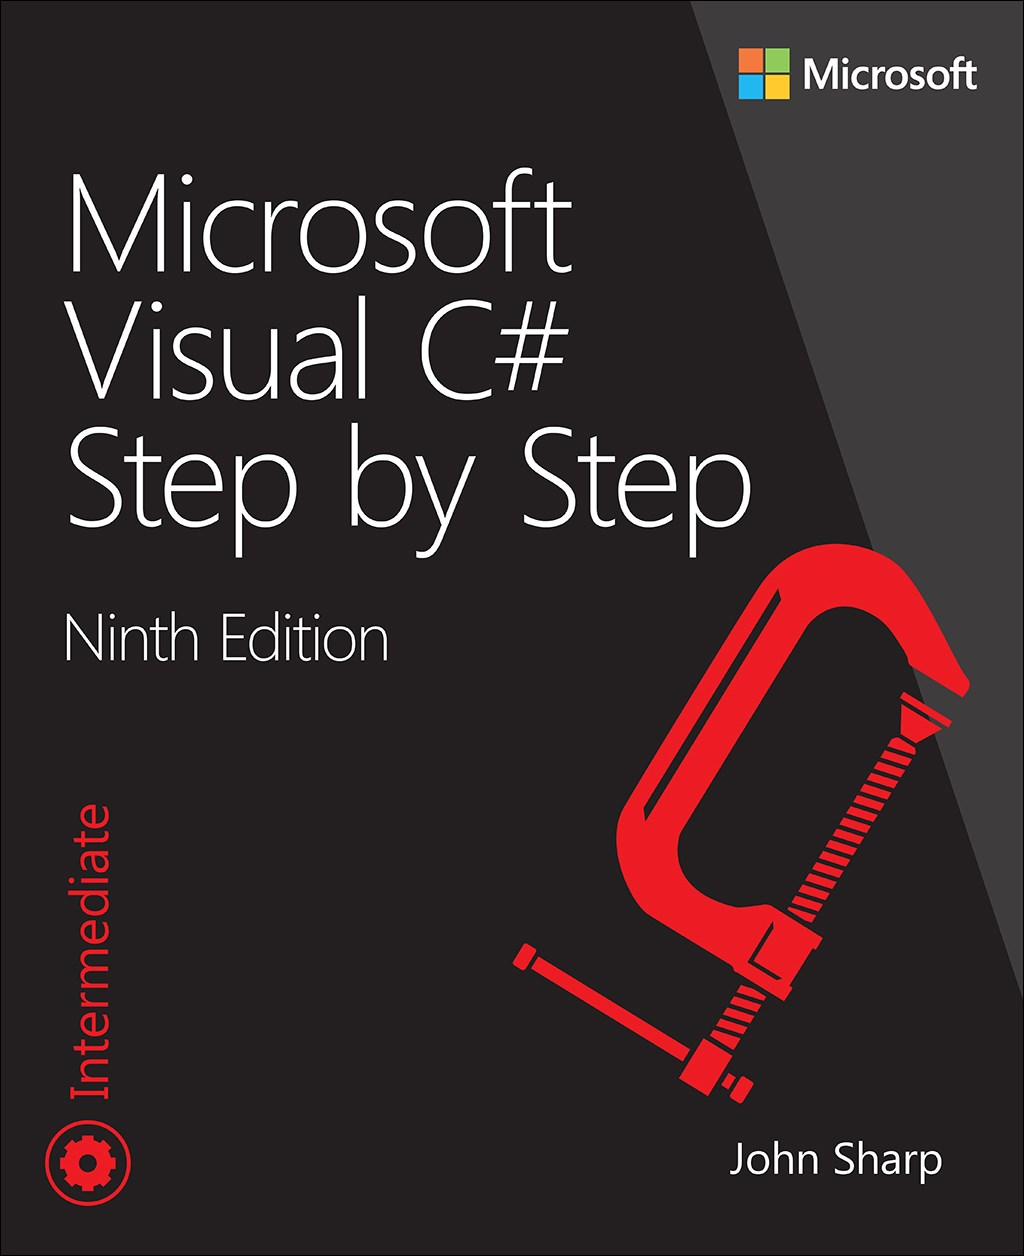 Microsoft visual c step by step 9th edition microsoft press store microsoft visual c step by step 9th edition fandeluxe